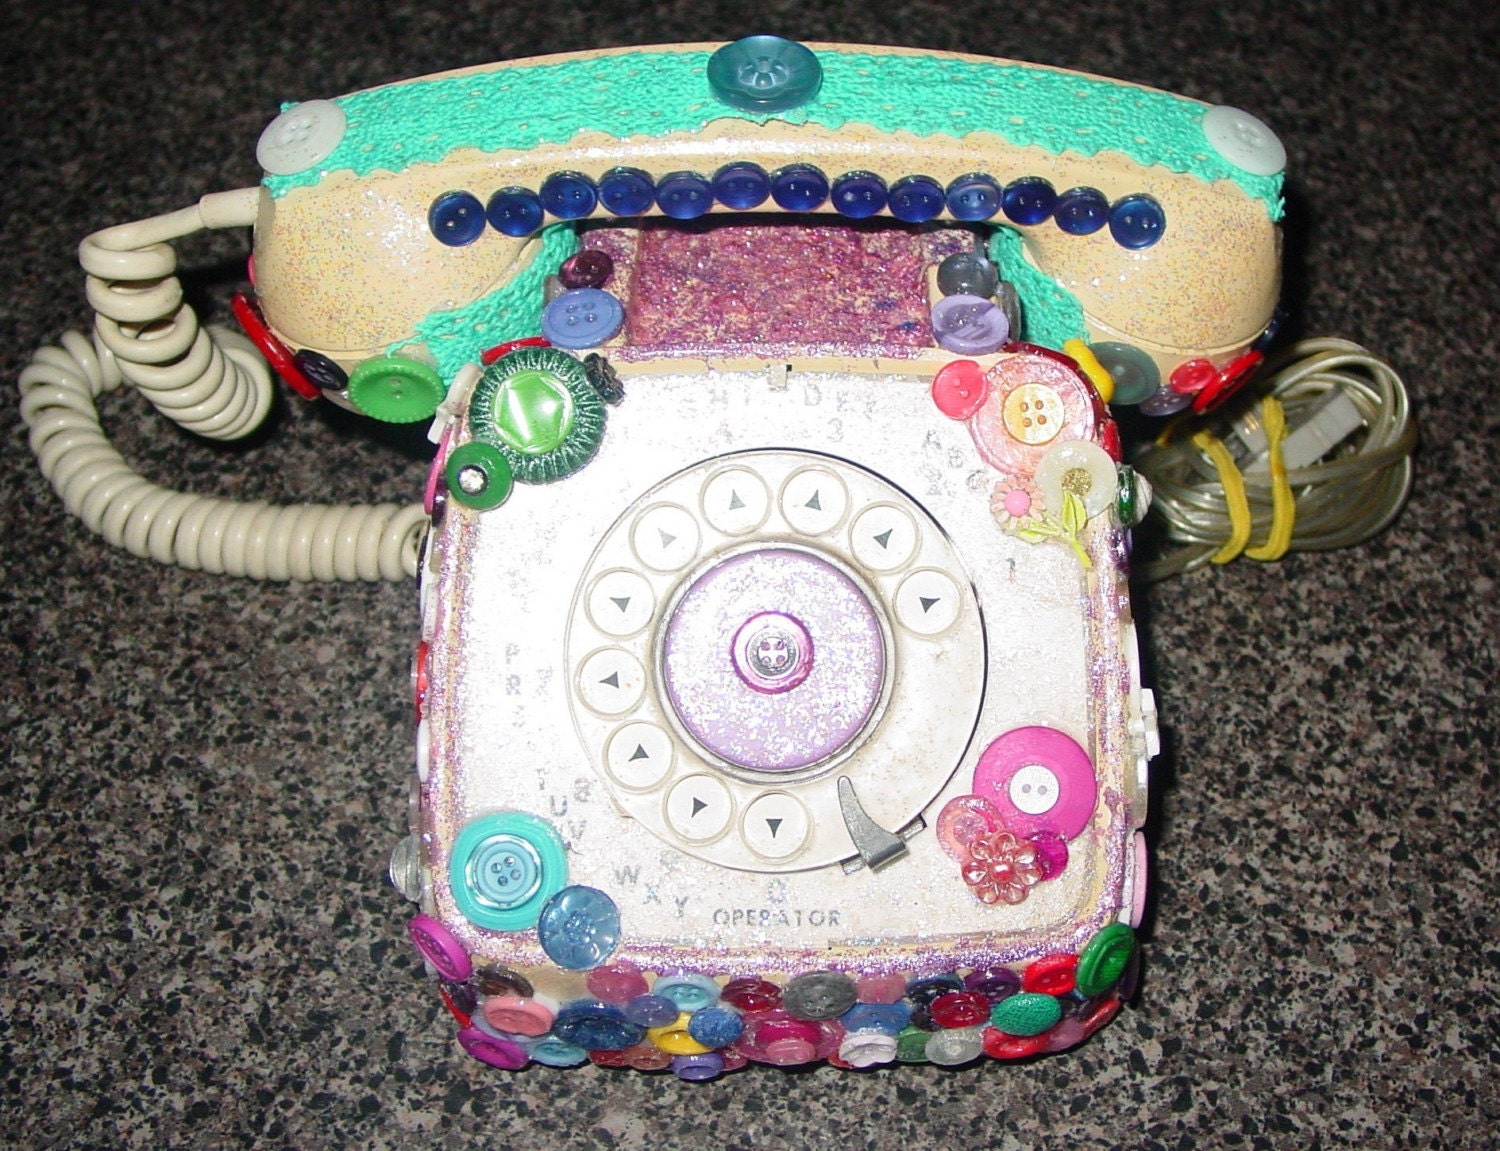 recycled vintage dial button phone by M. Reinke.